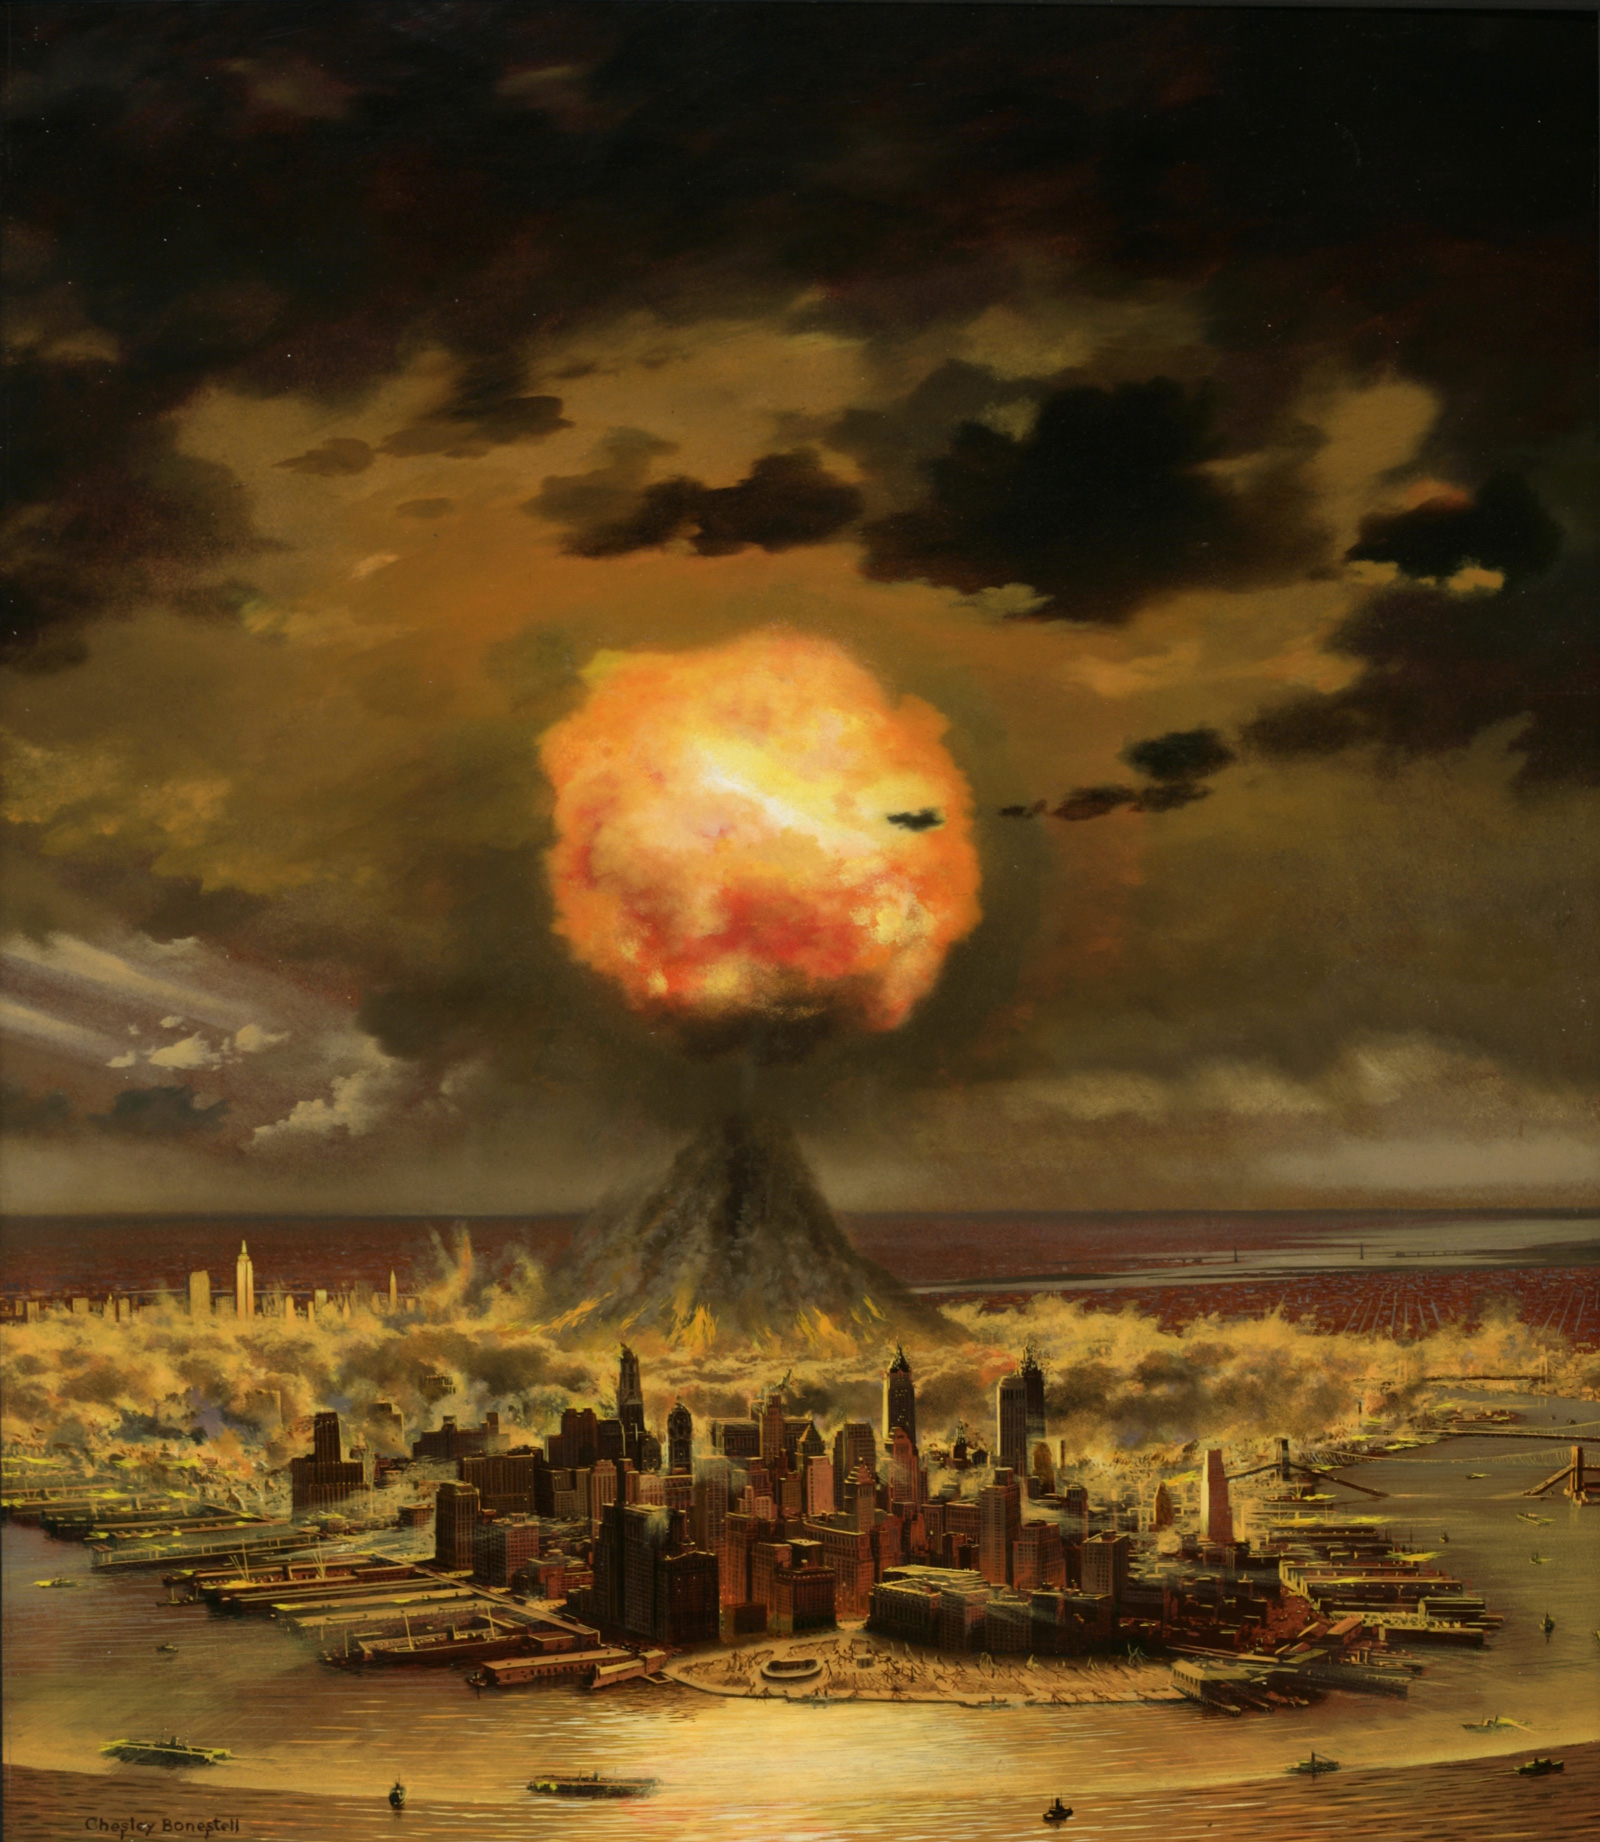 An illustration by Chesley Bonestell for